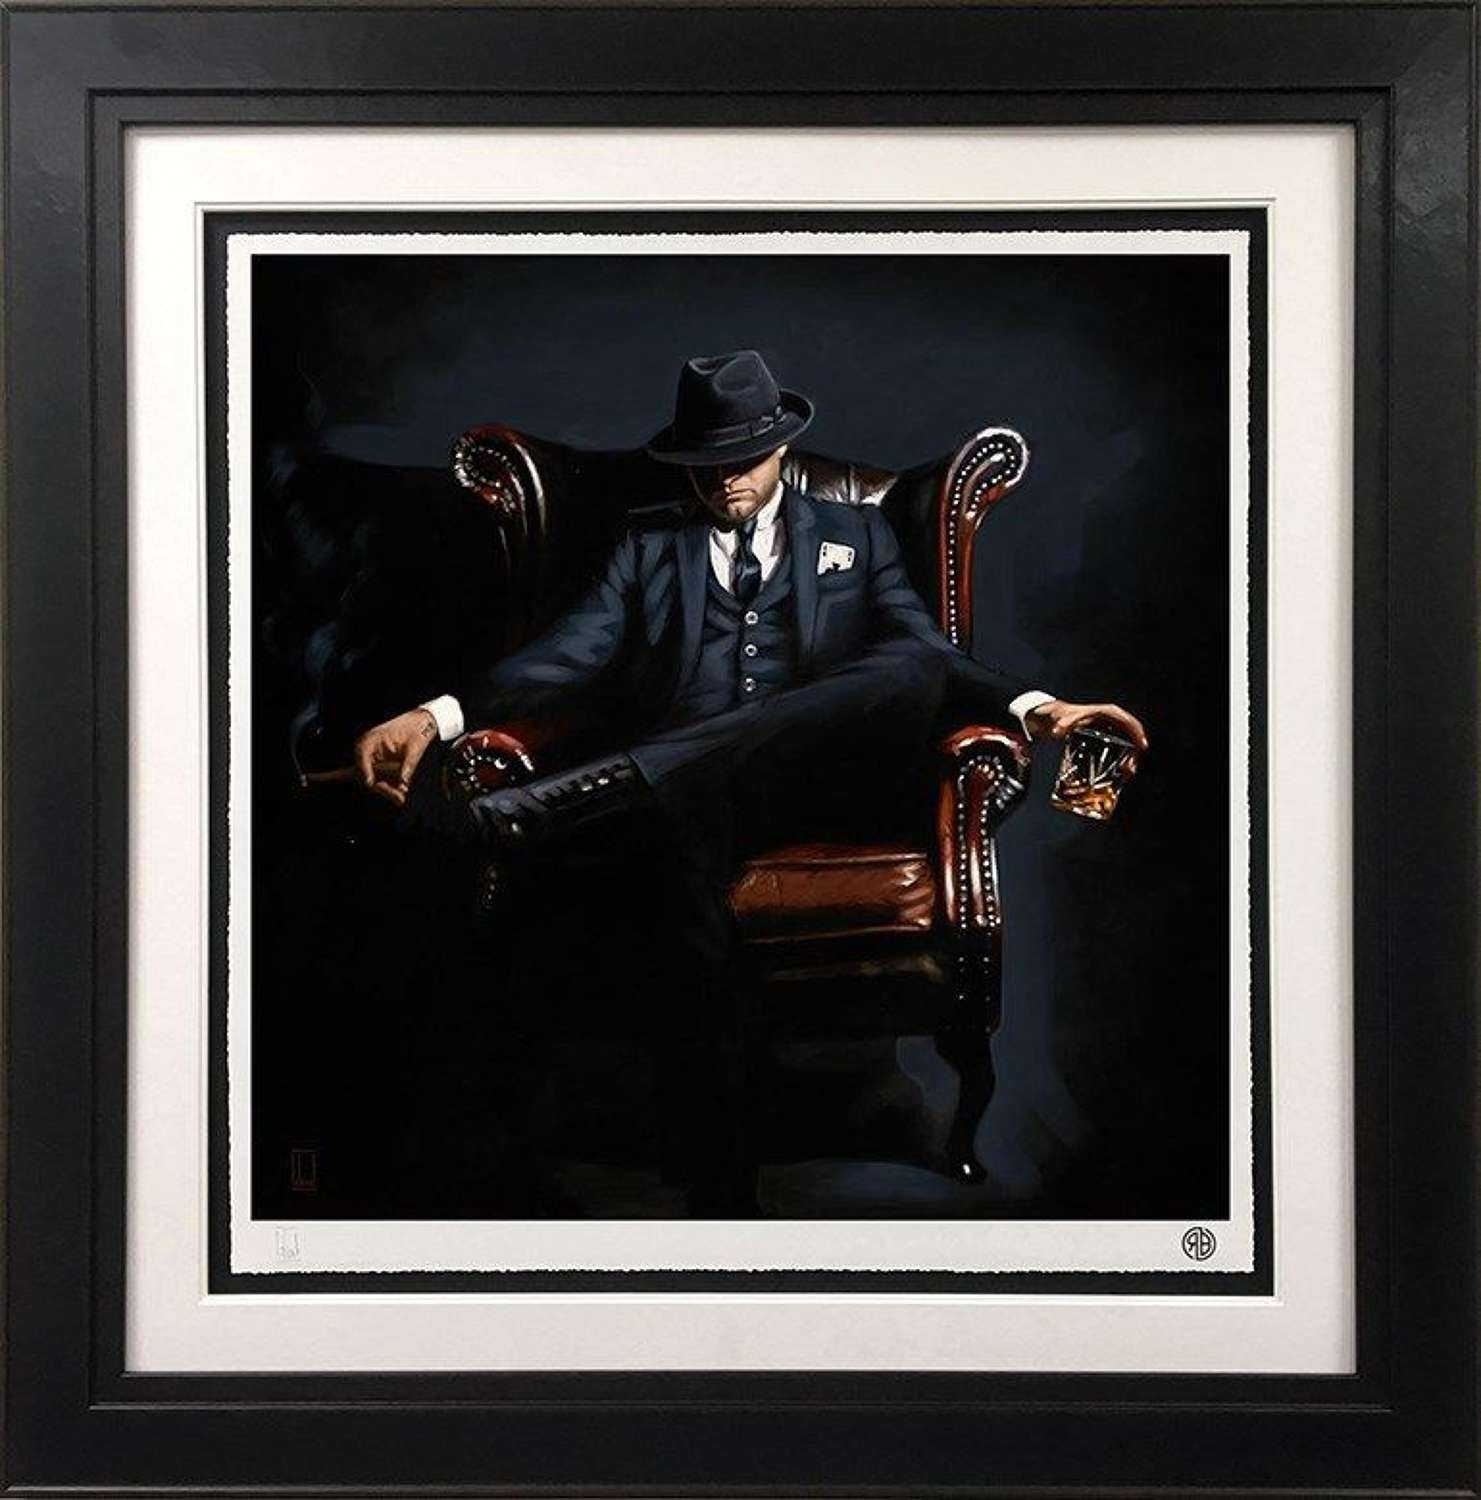 Self Made Man - Framed Art Print by Richard Blunt